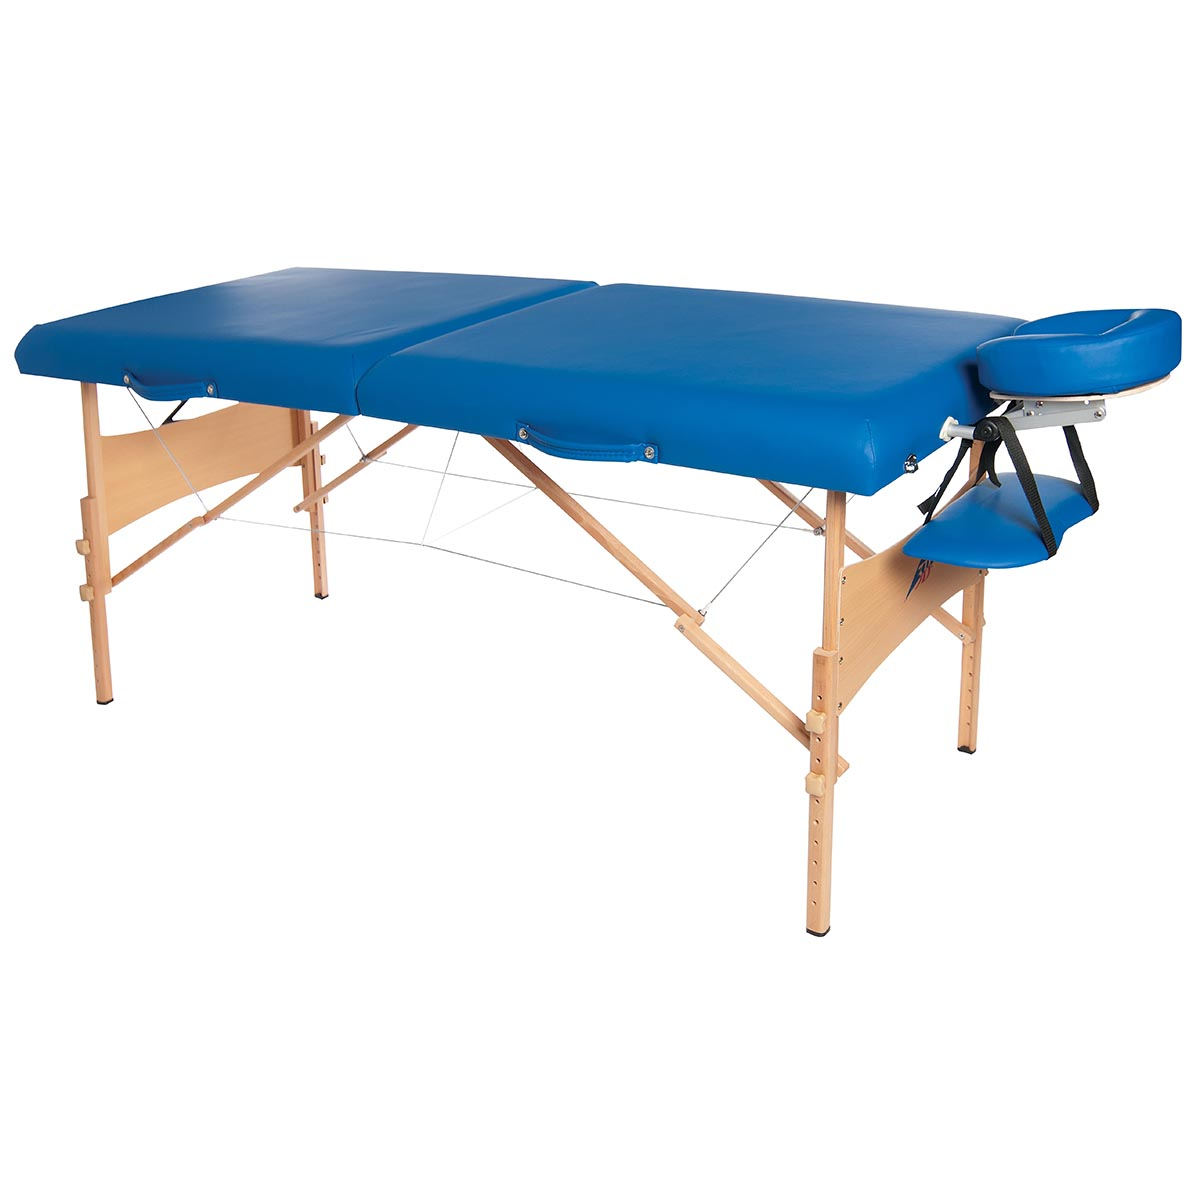 Table de massage pliante, kinésithérapie, ostéopathie Table portable lég u00e8re Confort # Table Massage Bois